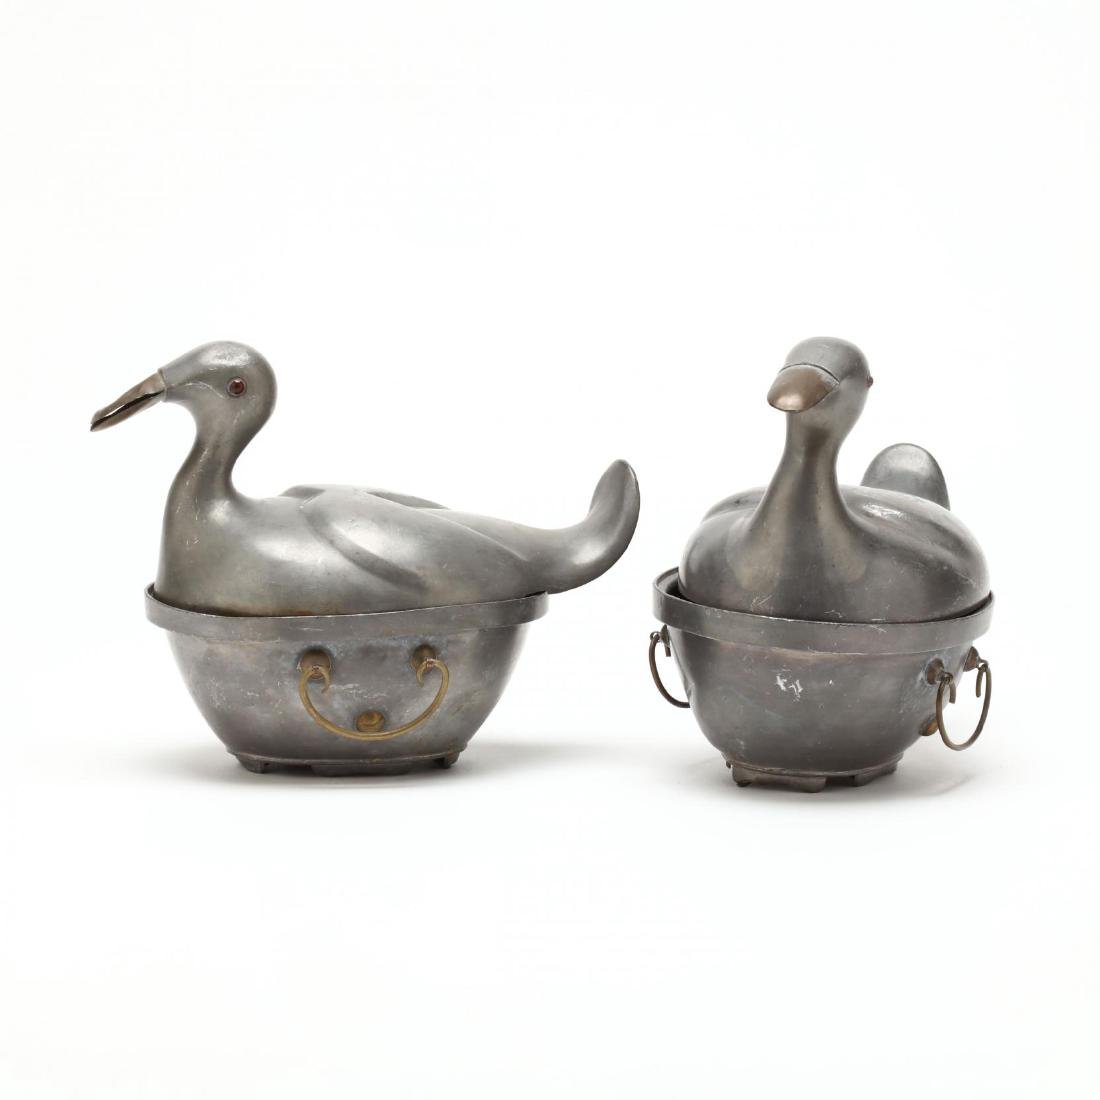 A Pair of Chinese Pewter Duck Containers - 2